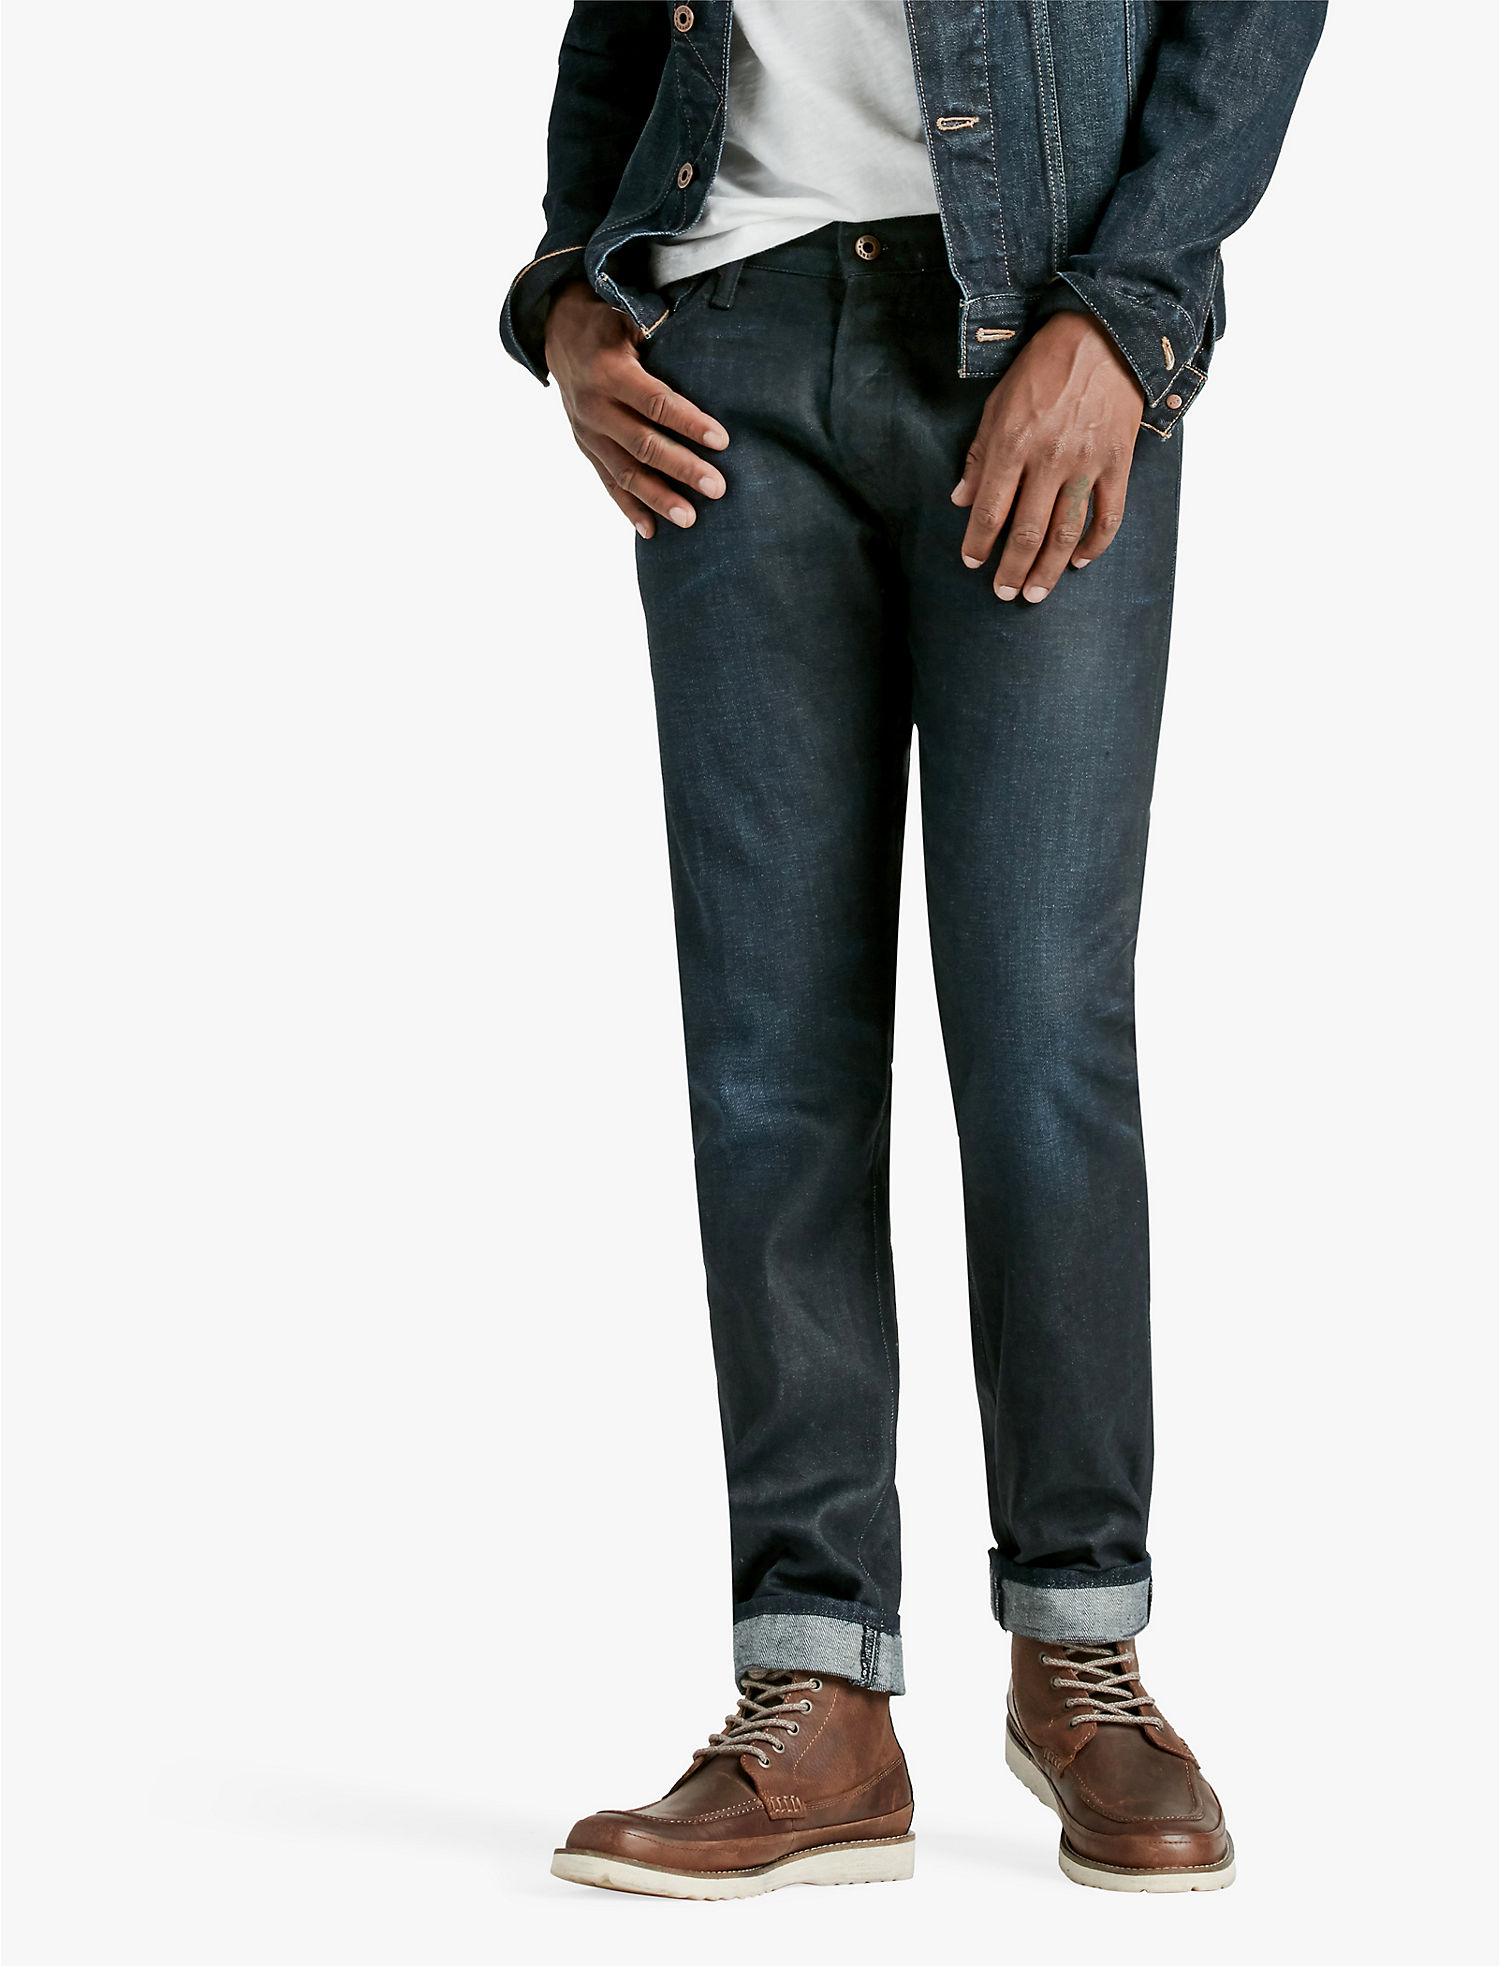 Mens jeans design legends jeans - Lucky 1 Authentic Skinny Jean